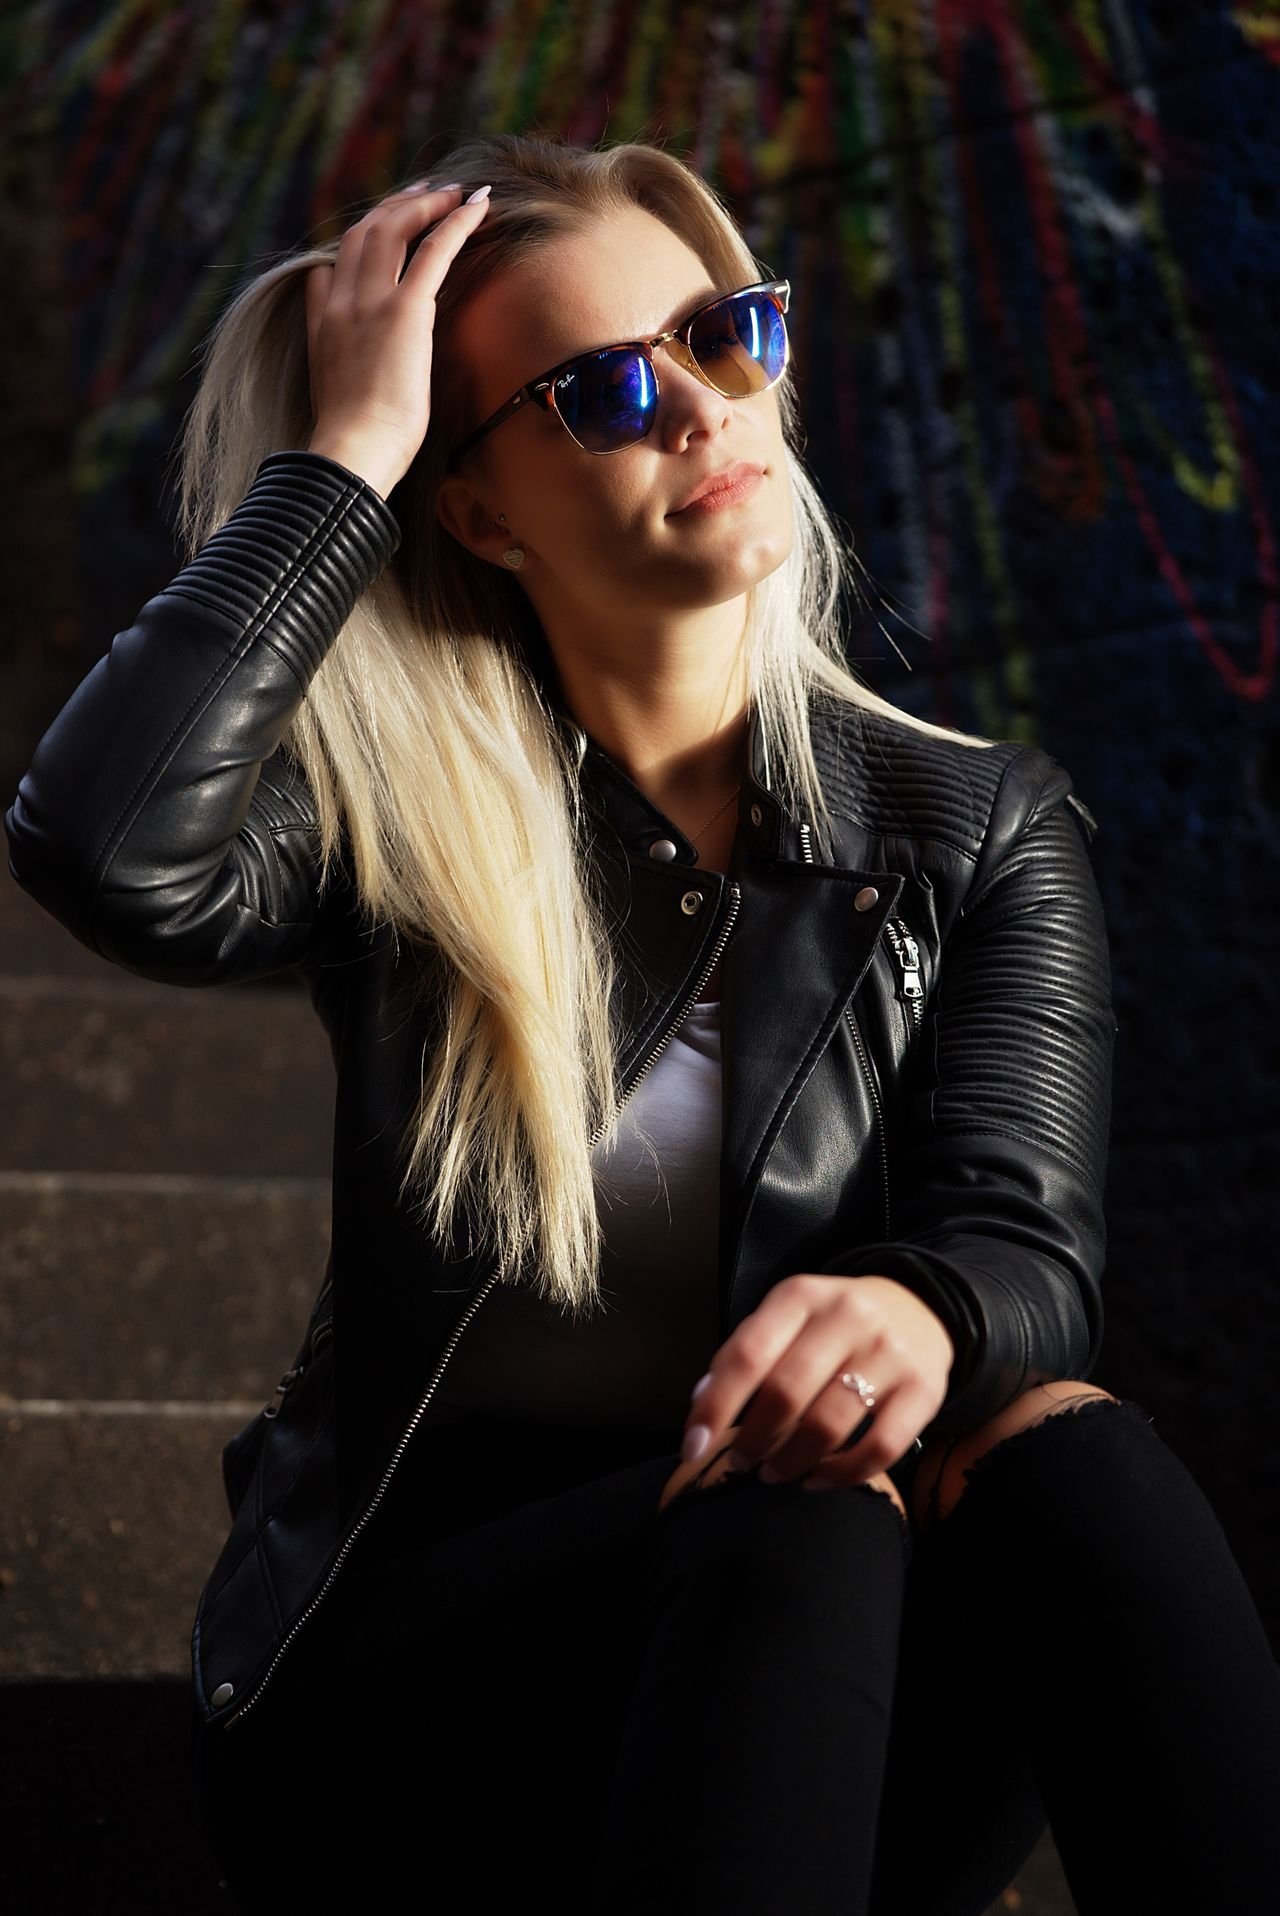 Young Adult Blond Hair Sunglasses Fashion Beauty Portrait Young Women Leather Jacket Females